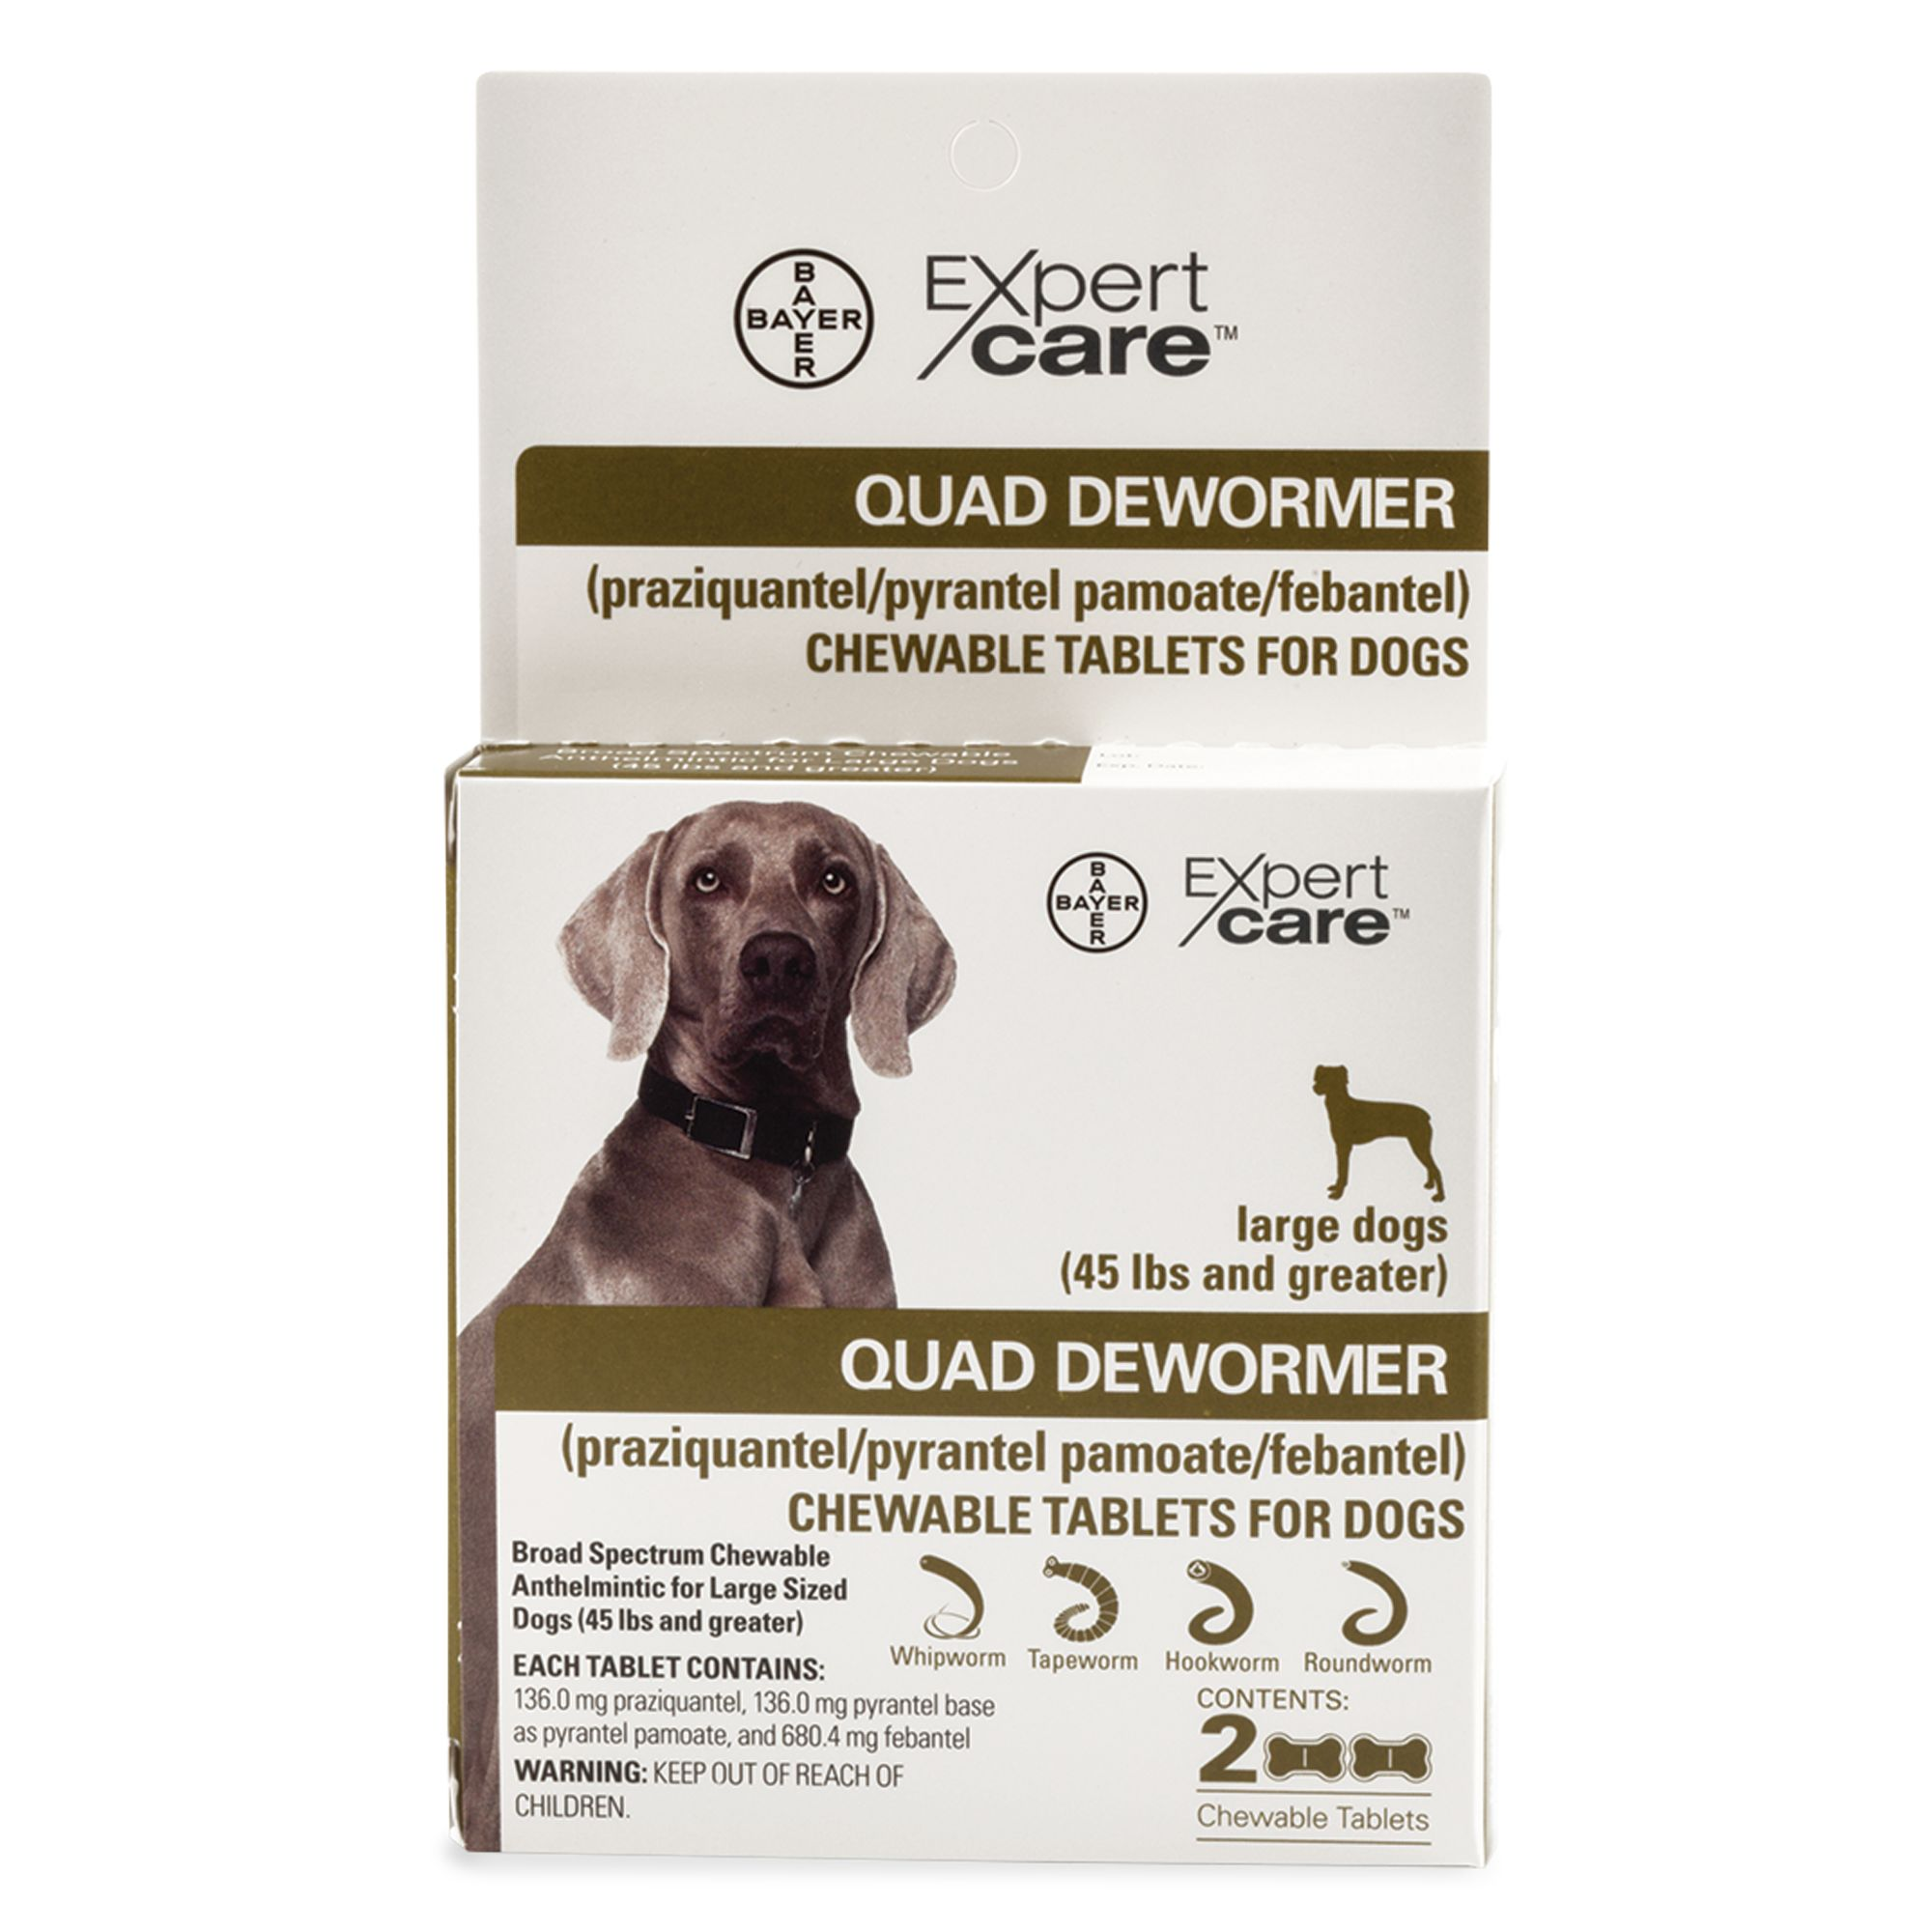 Bayer Expert Care 2 25 Lb Dog Quad Dewormer Size 45 Lb